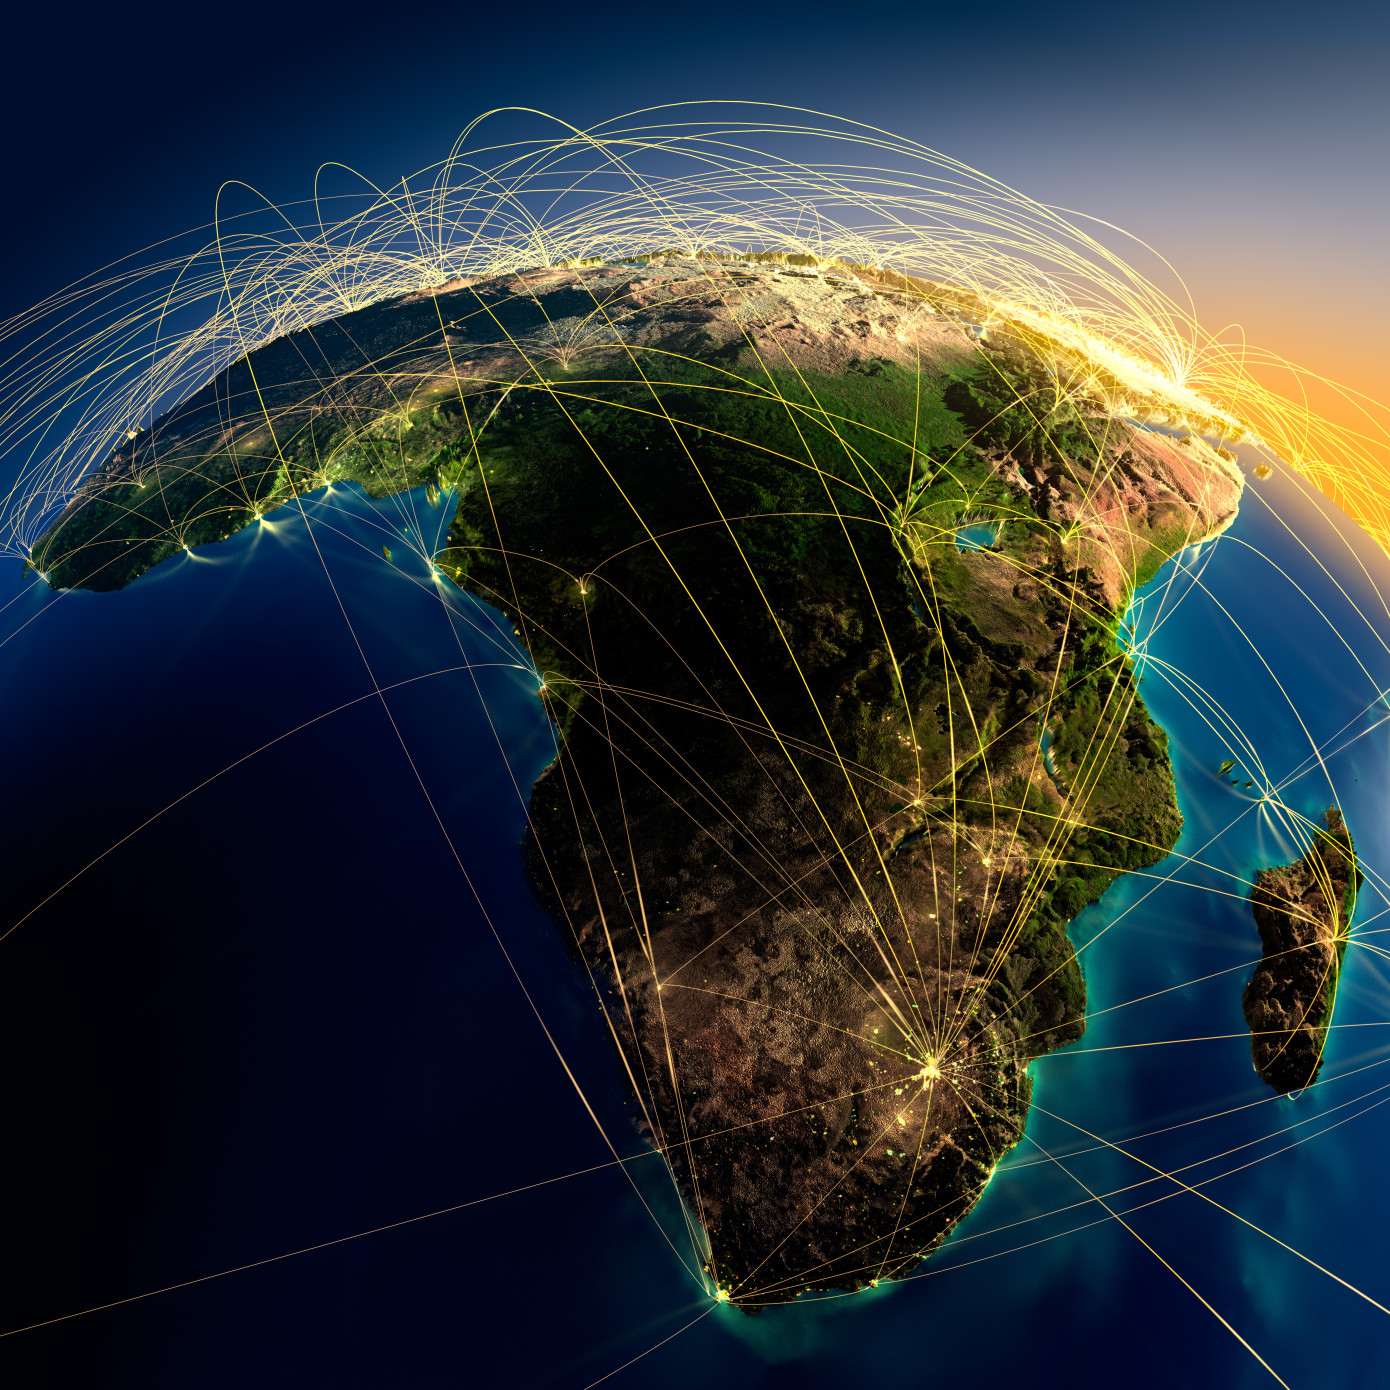 Africa by Monique Maddy_ tech crunch